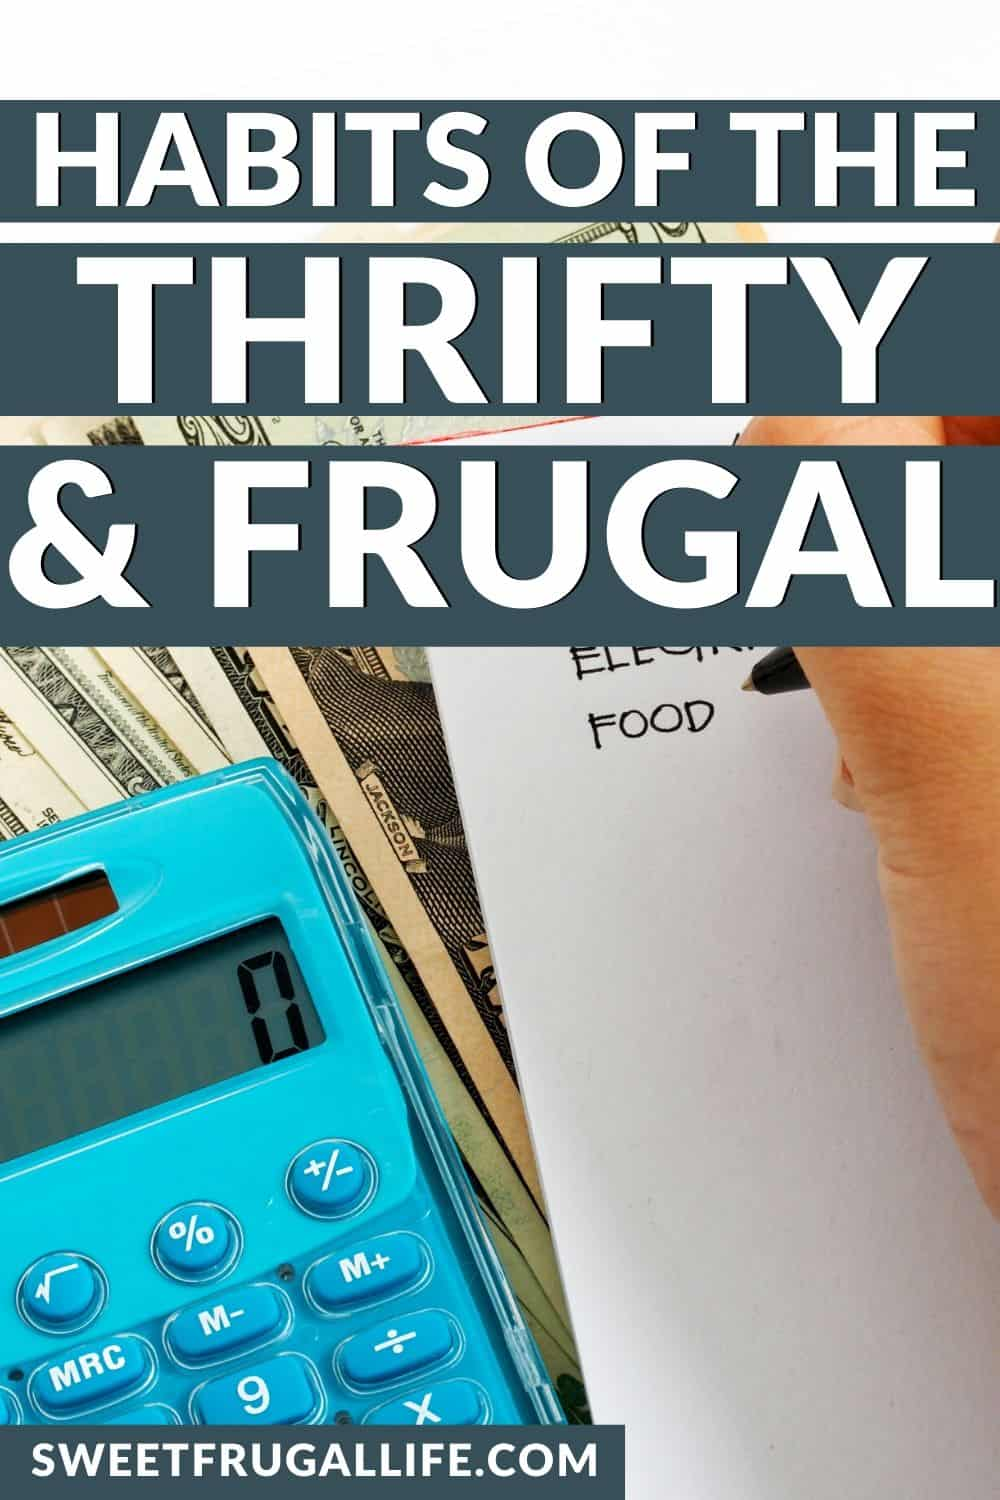 frugal habits - how to be thrifty